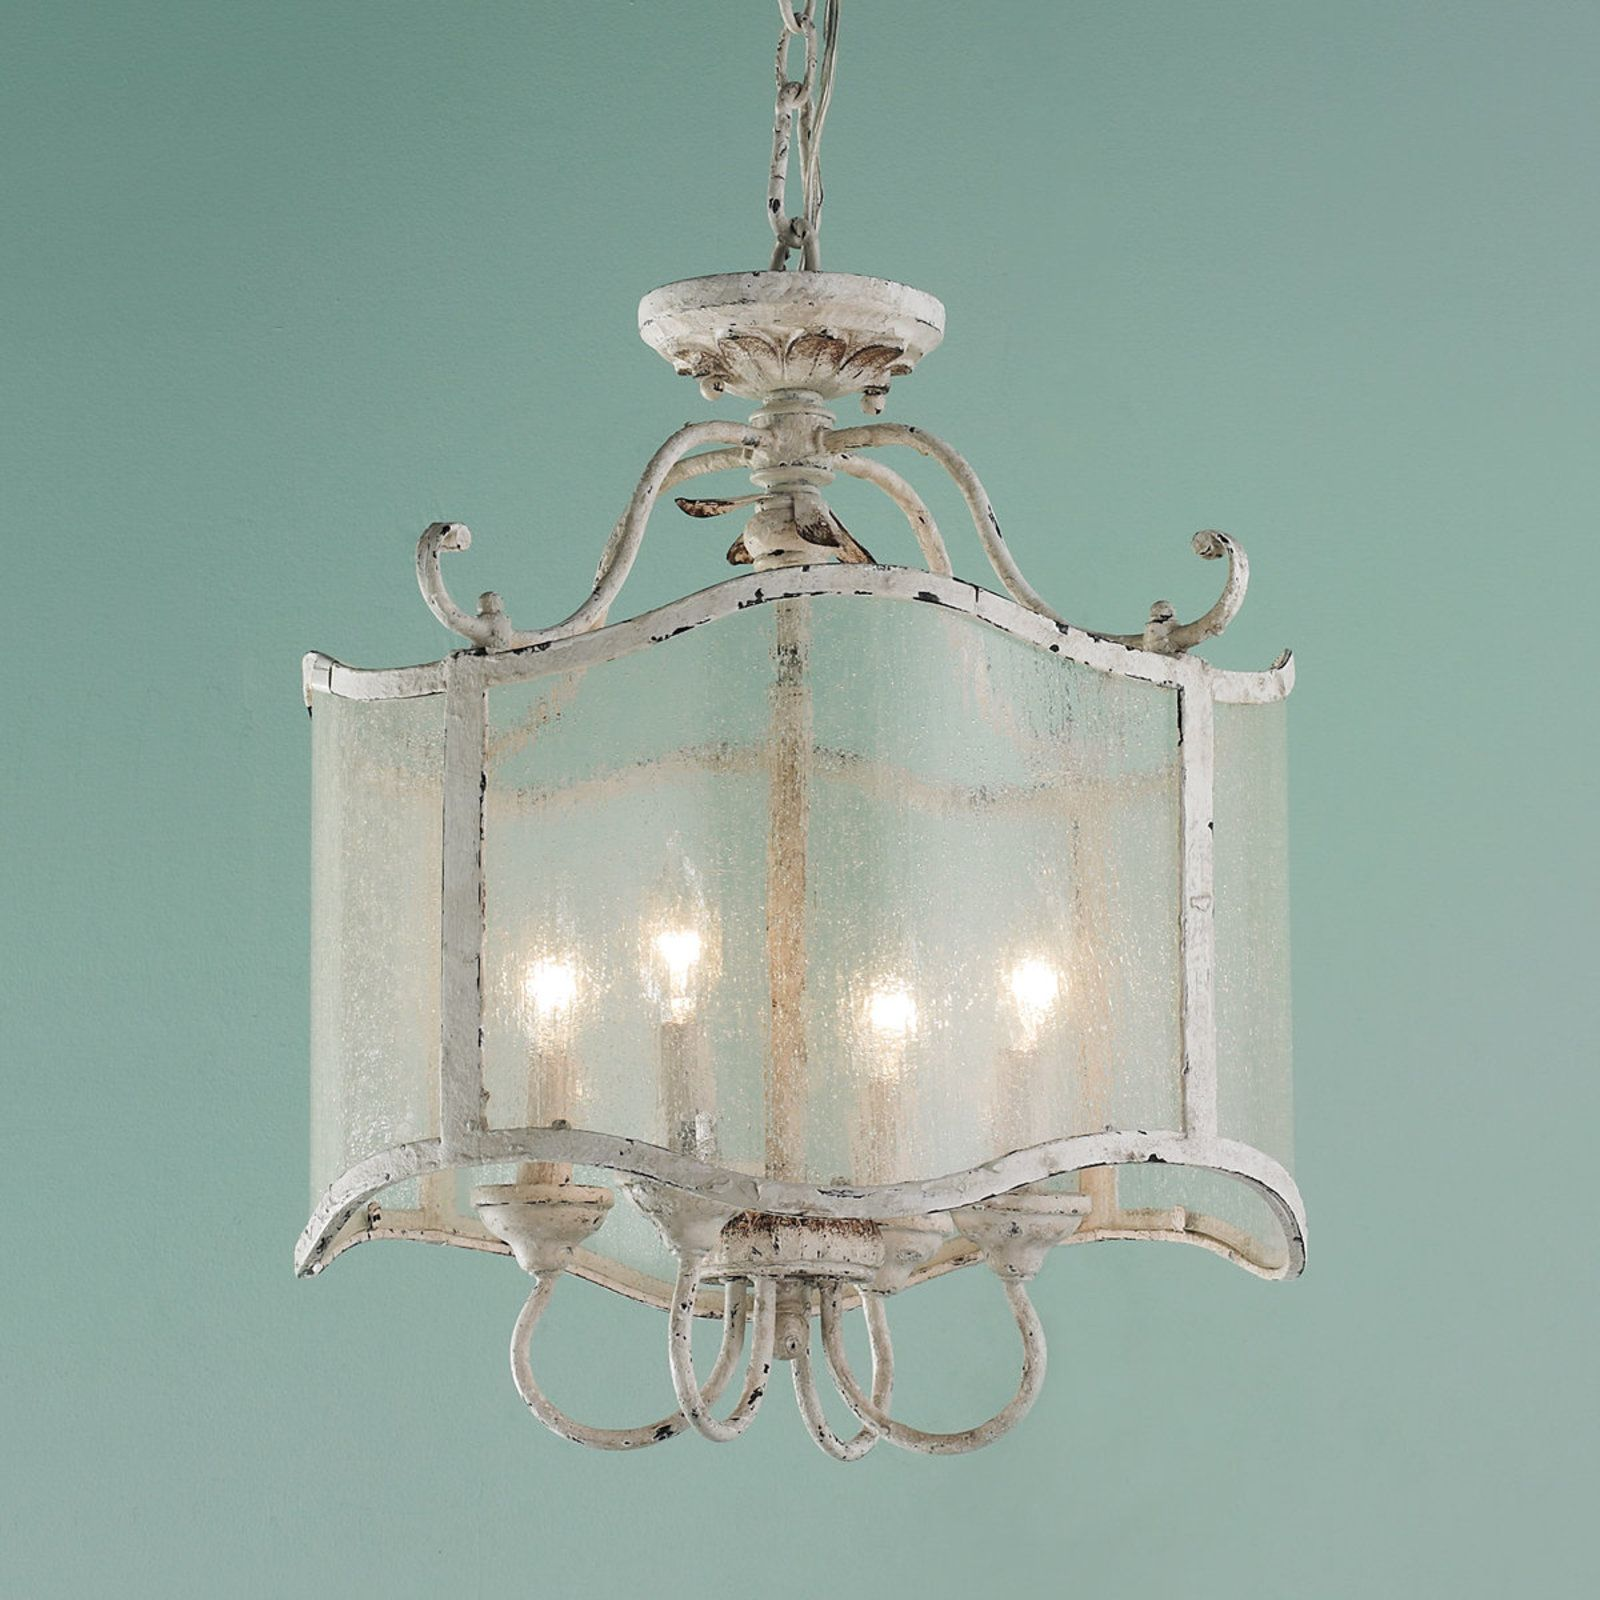 French Cream Iron Lantern   Iron, Lights and French country bedrooms